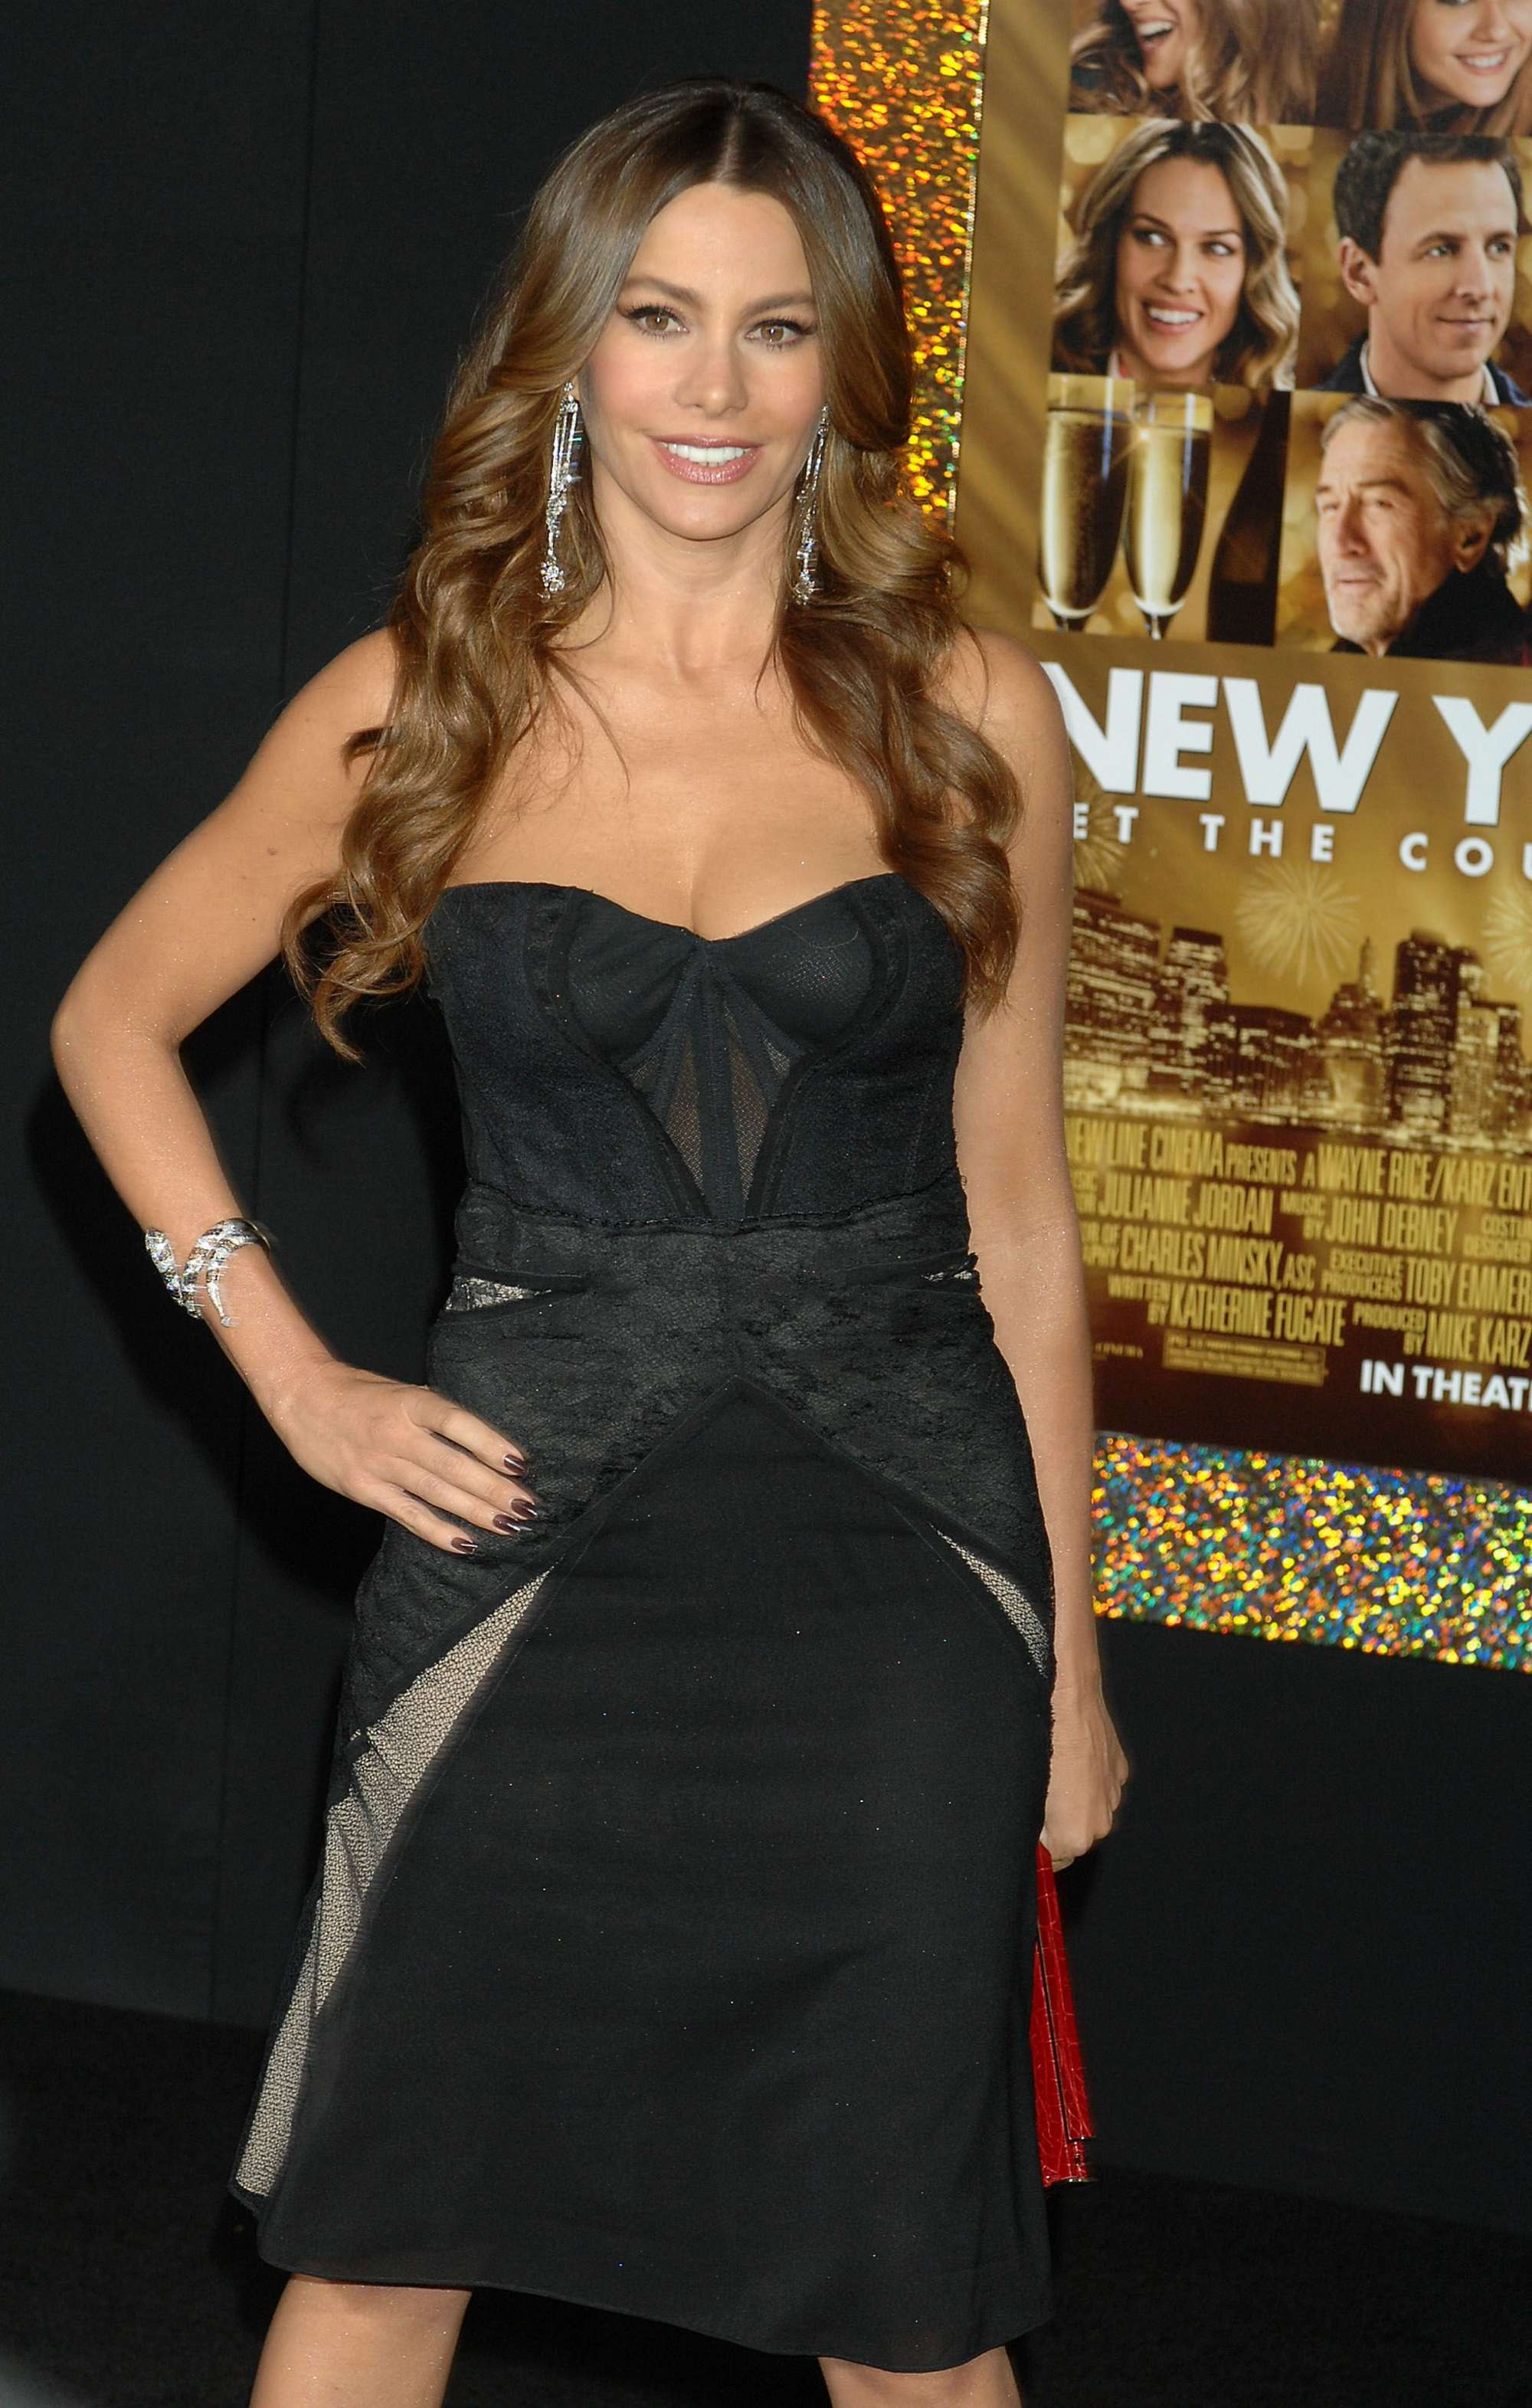 sofia vergara wardrobe malfunction breast new year s sofia vergara s